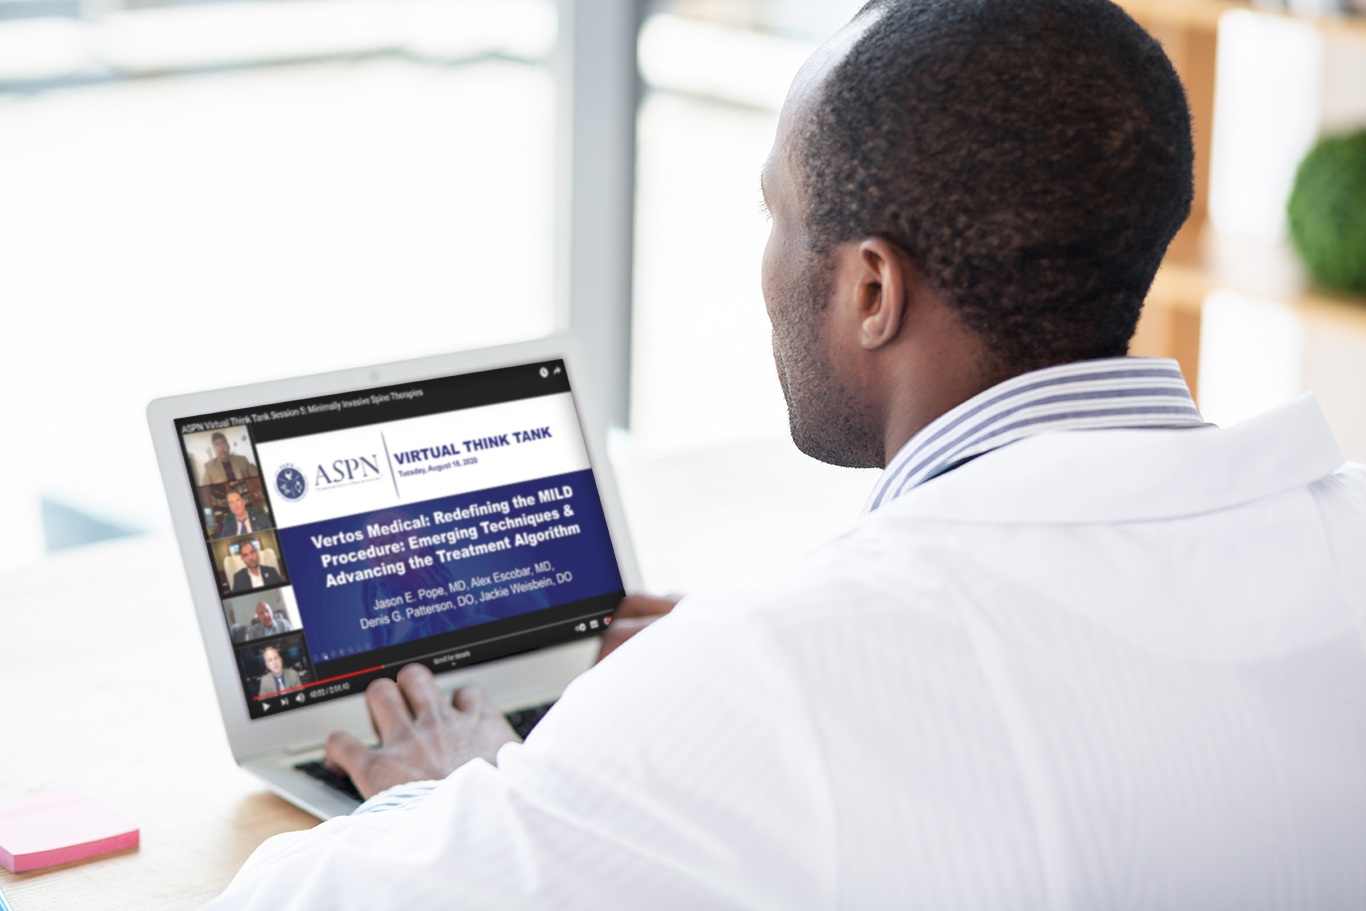 Doctor on laptop looking at continuing education opportunities with the Mild Procedure to Treat Lumbar Spinal Stenosis